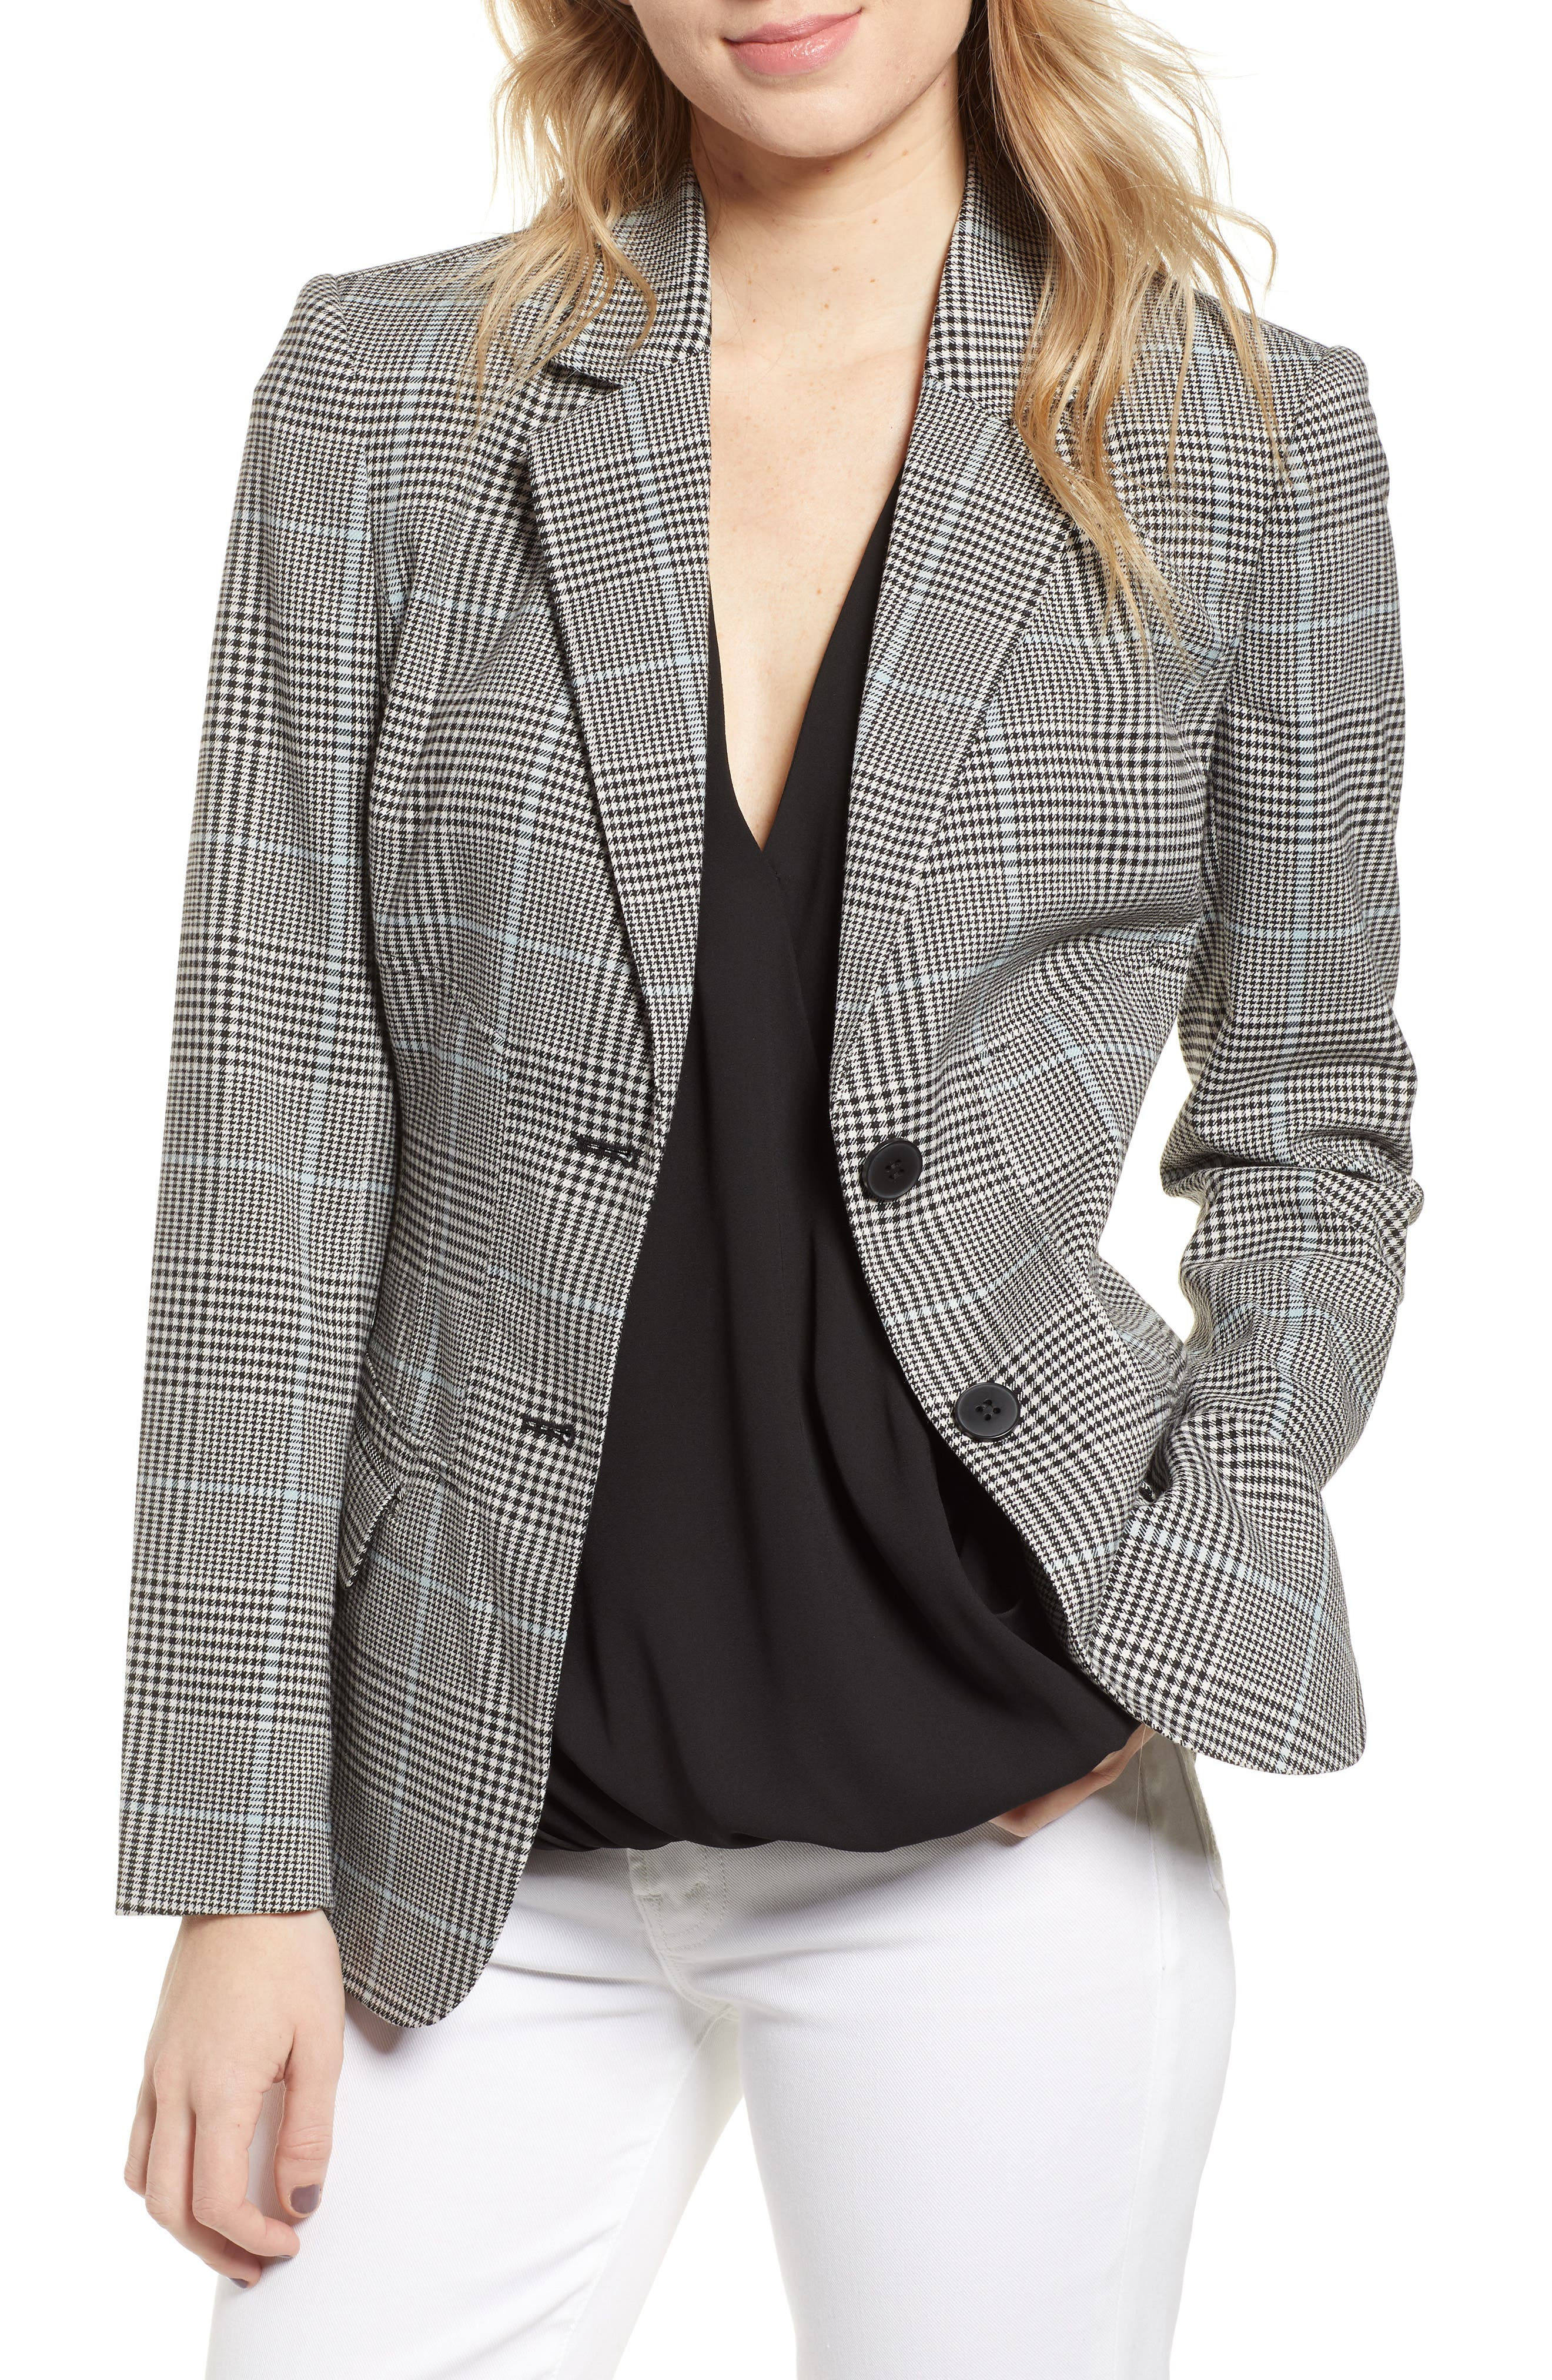 CHELSEA28 Plaid Blazer, Main, color, BLUE OMPHALODES CHECK PATTERN